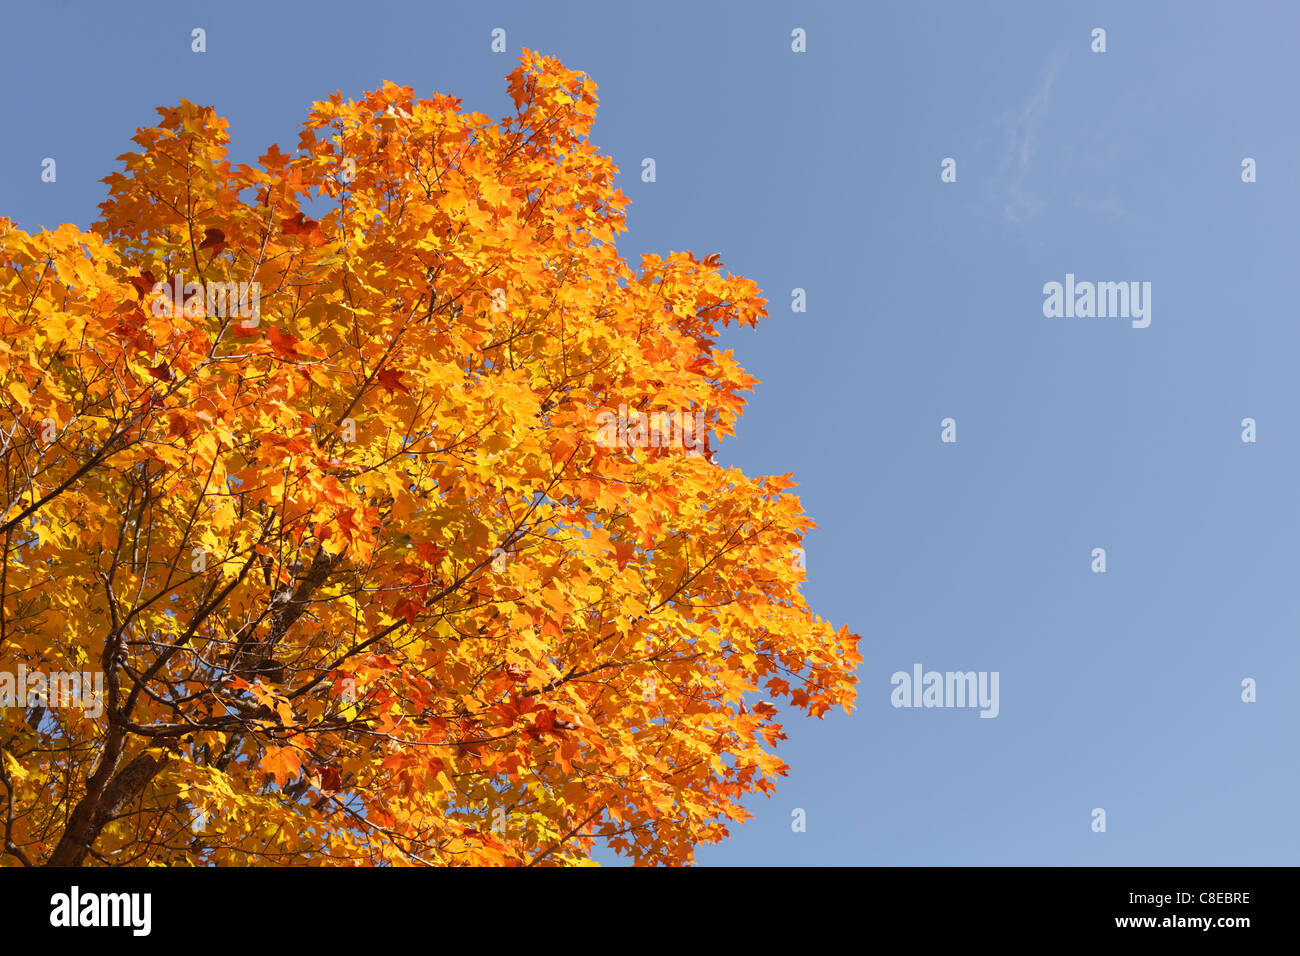 Autumn view of colorful maple tree leaves. - Stock Image